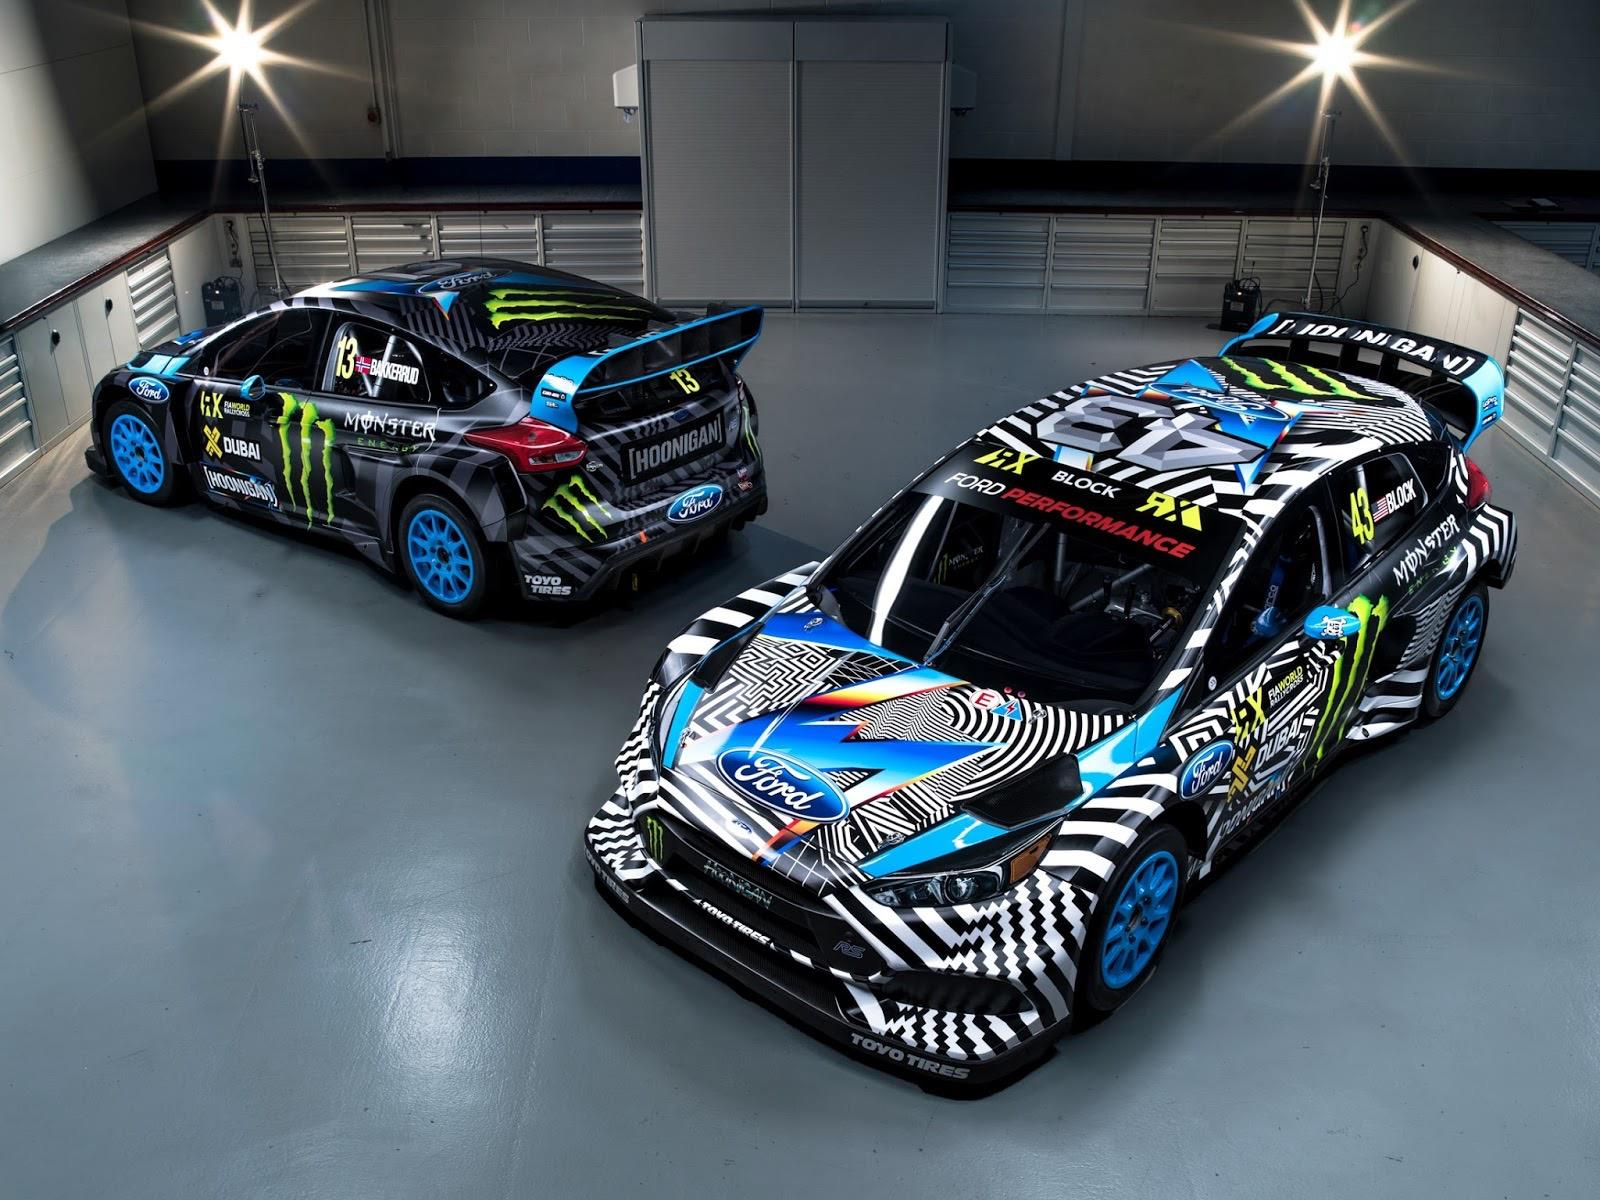 R4  New York City Subway car together with Mahindra Sarpanch 575 Di Mkm furthermore Electrical Motor Efficiency furthermore Asi Luce El Brutal Ford Focus Rs Rx De Ken Block besides MF 67. on 1200 hp dc motor